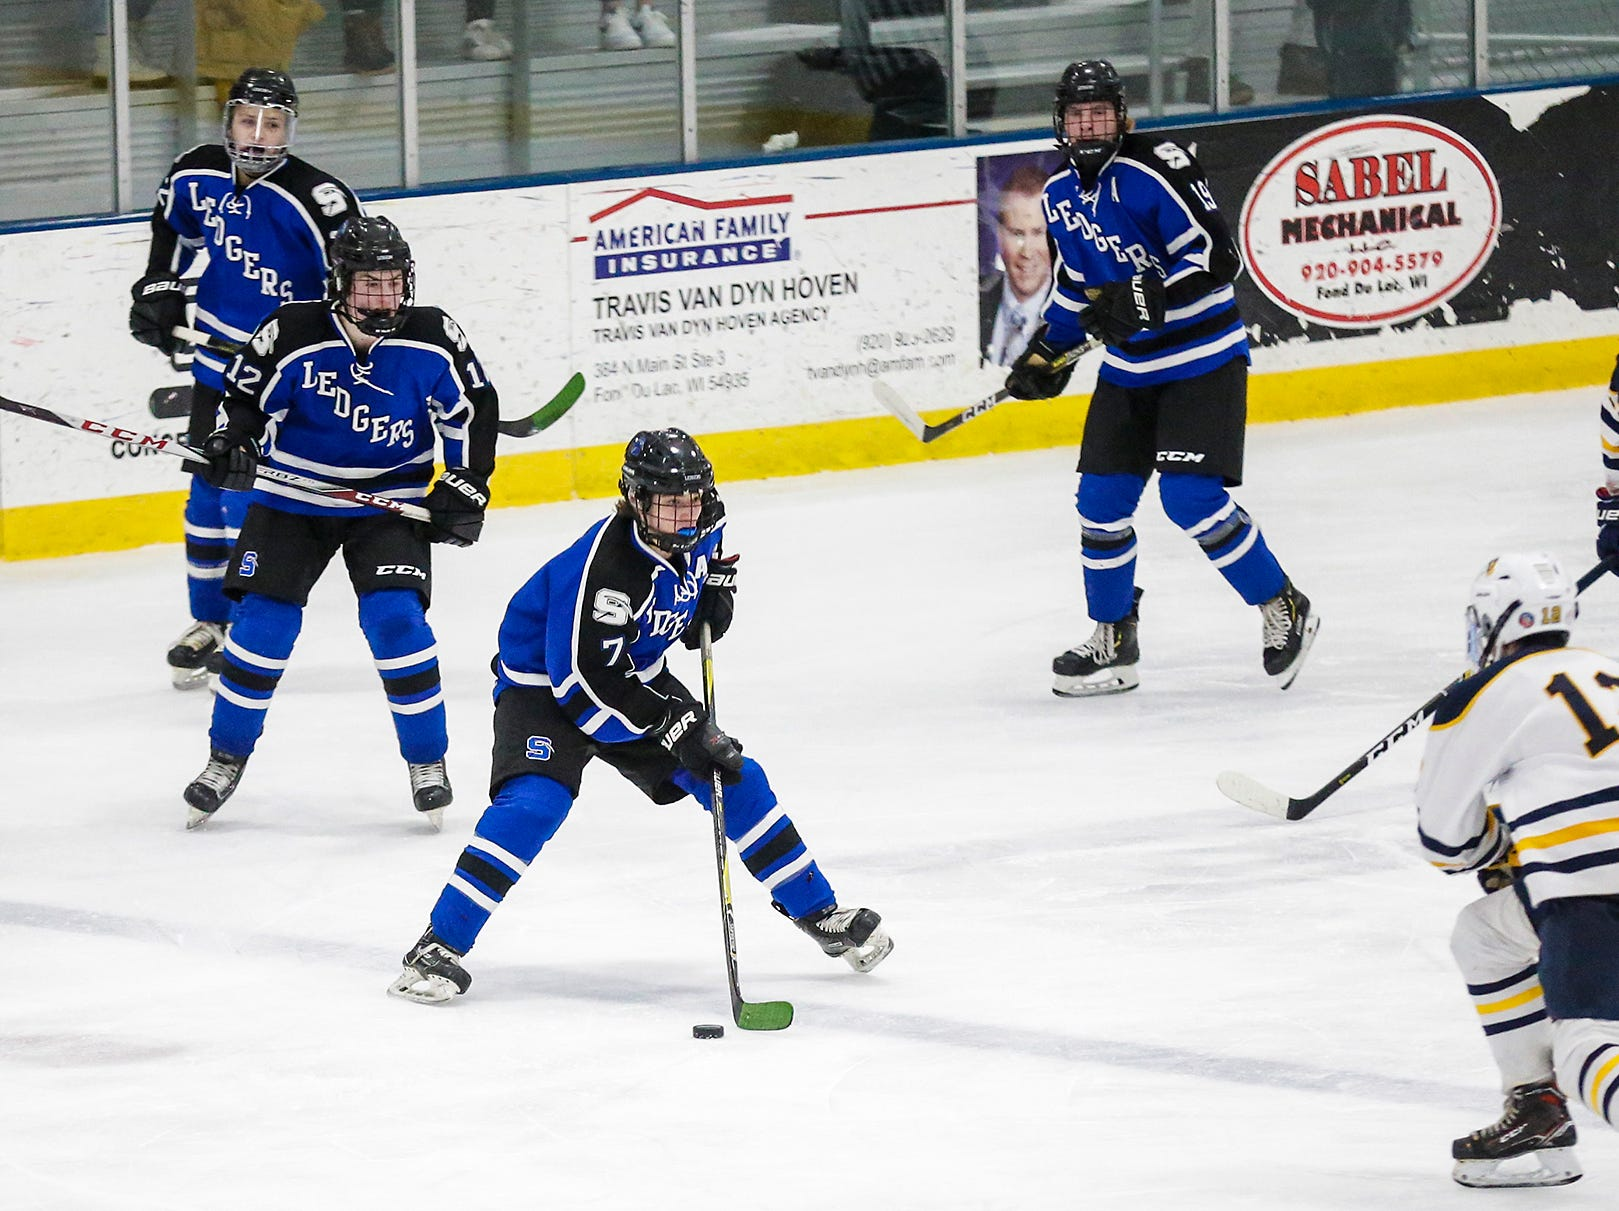 St. Mary's Springs boys co-op hockey's Jack Sabel (7) controls the puck against University School of Milwaukee Friday, February 22, 2019 during their WIAA sectional final game in Fond du Lac. University School won the game 6-1 and will advance to state. Doug Raflik/USA TODAY NETWORK-Wisconsin